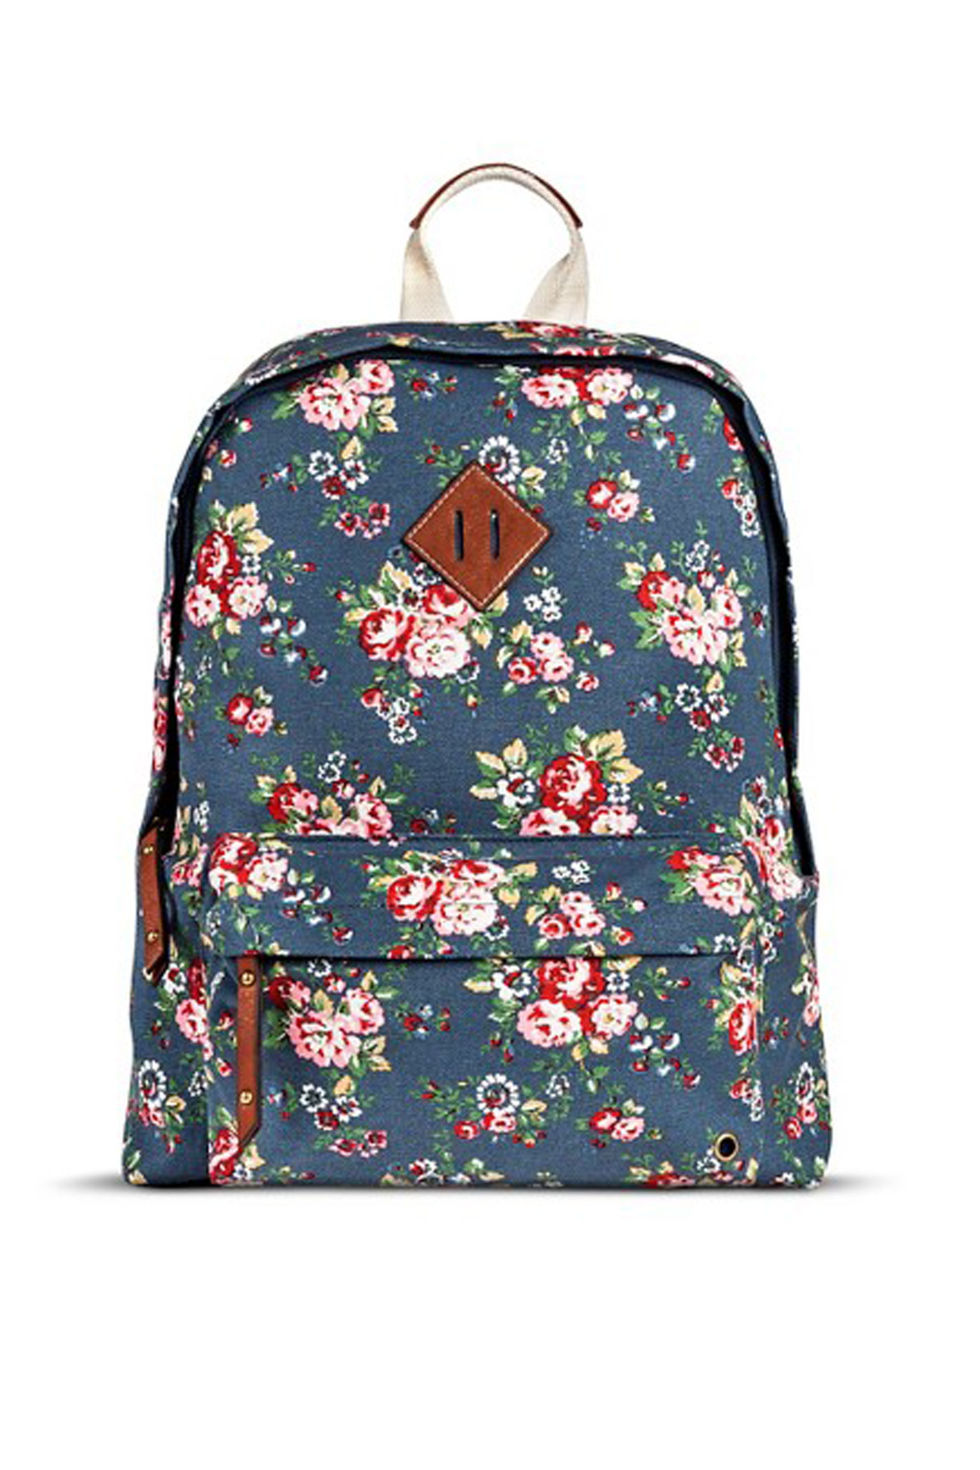 Places To Get Cute Backpacks | Crazy Backpacks